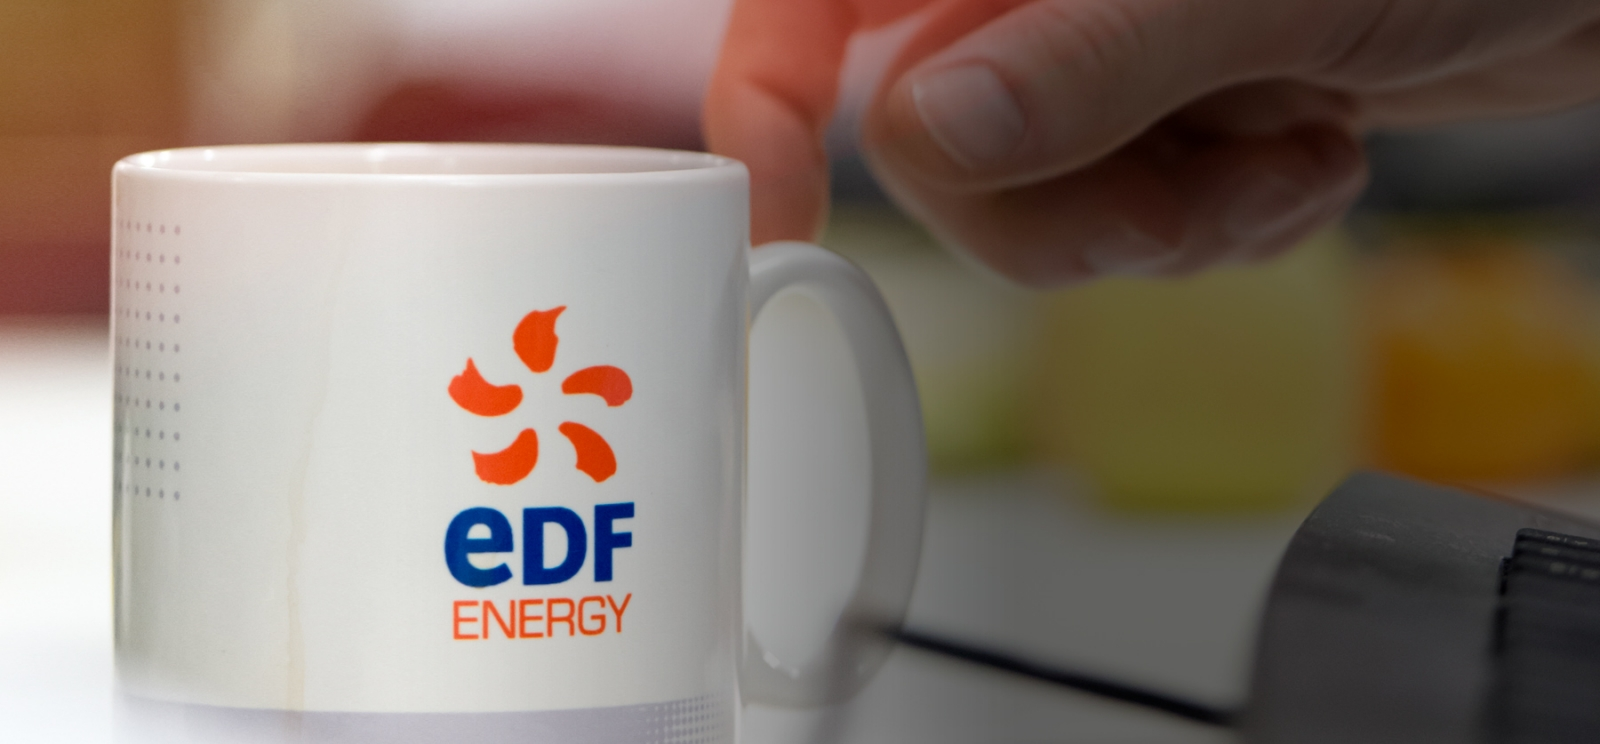 Hand about to pick up an EDF Energy branded mug